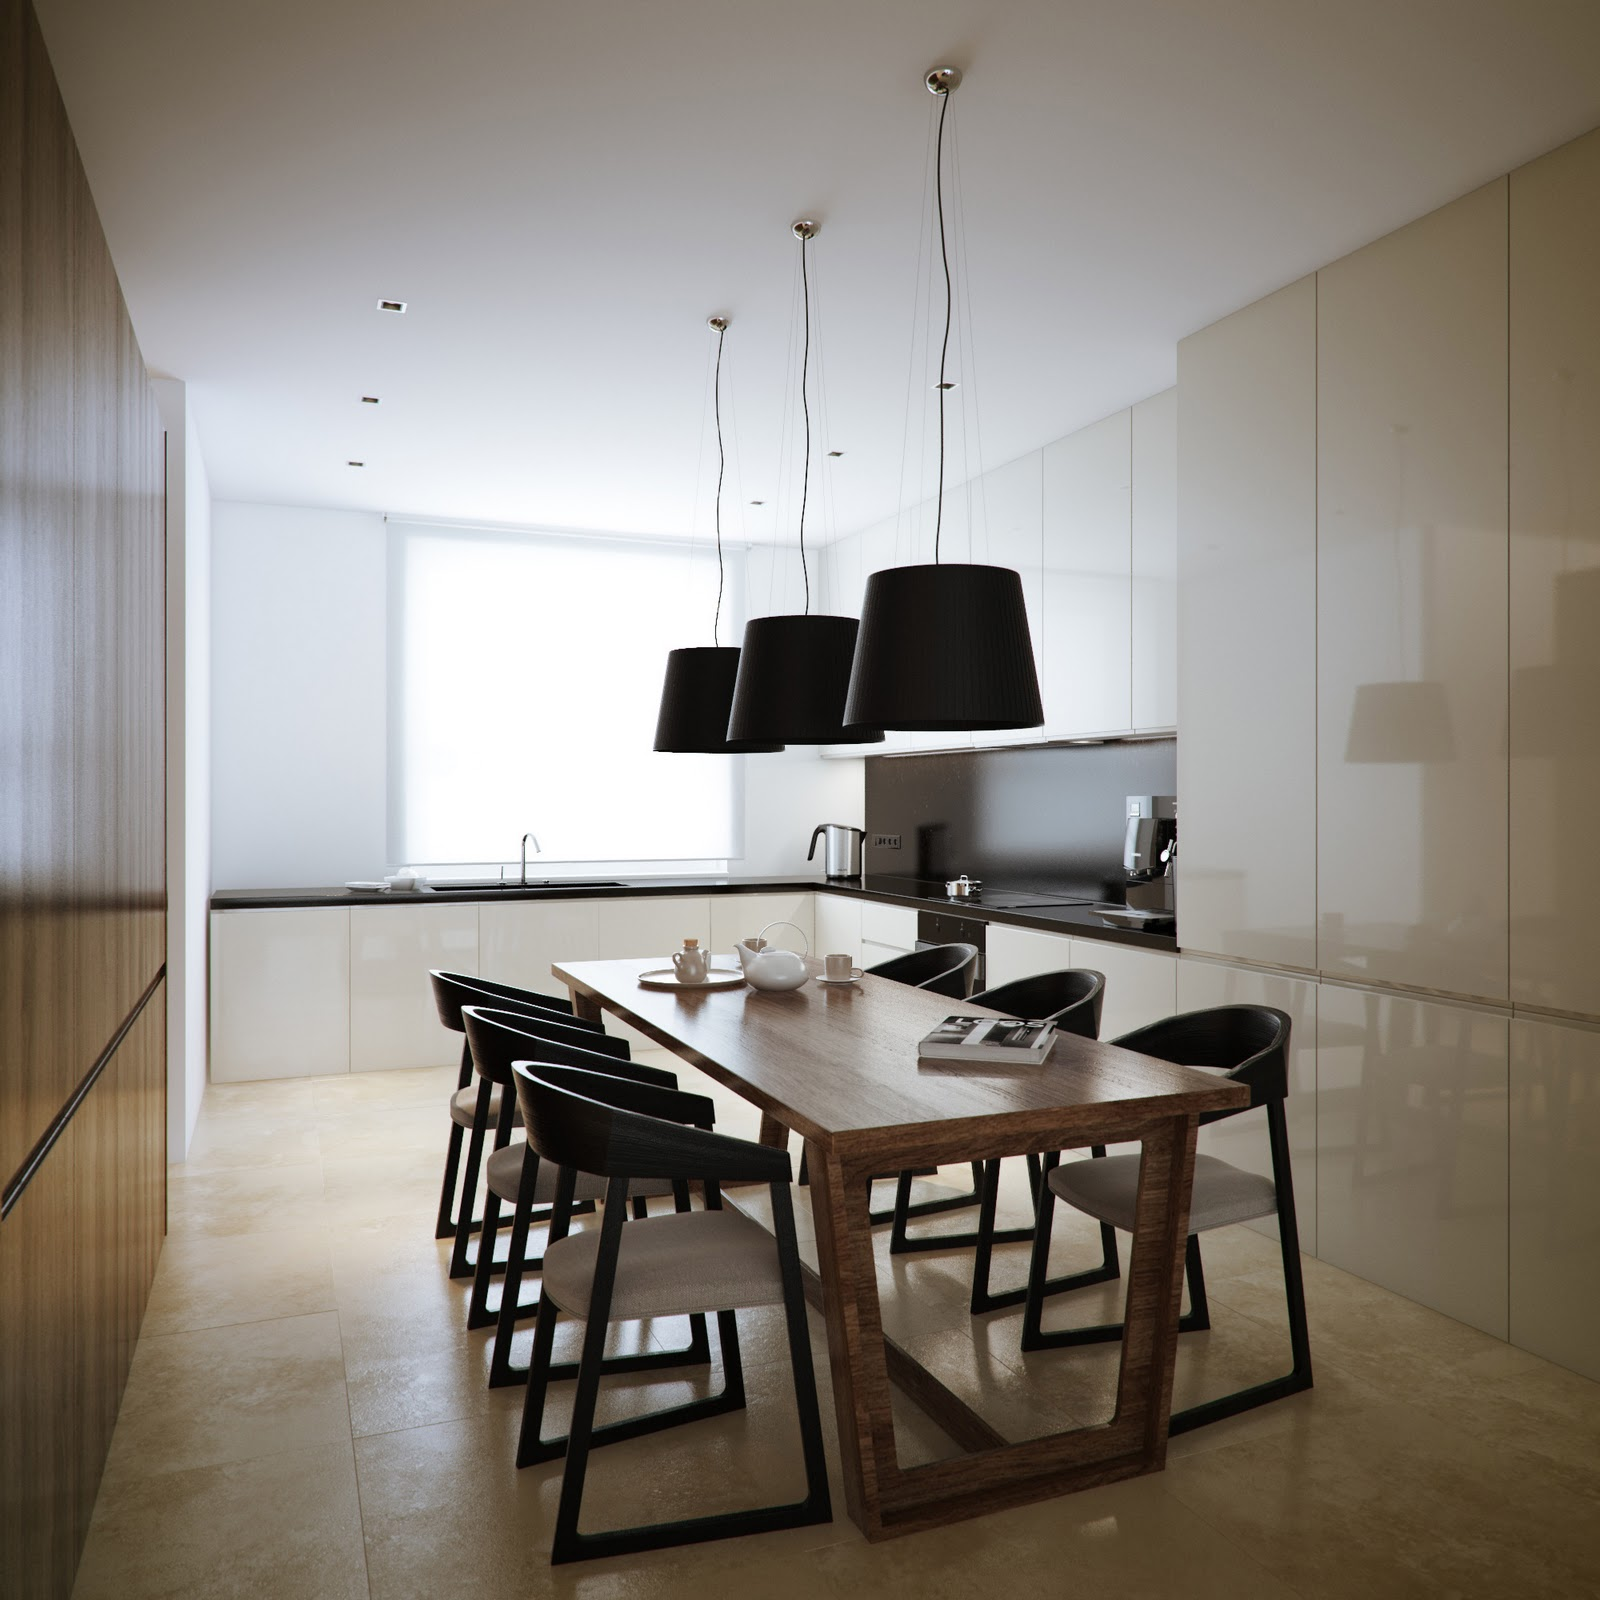 Simple White Themed Dining Room Design Ideas: Modern Minimalist Black And White Lofts